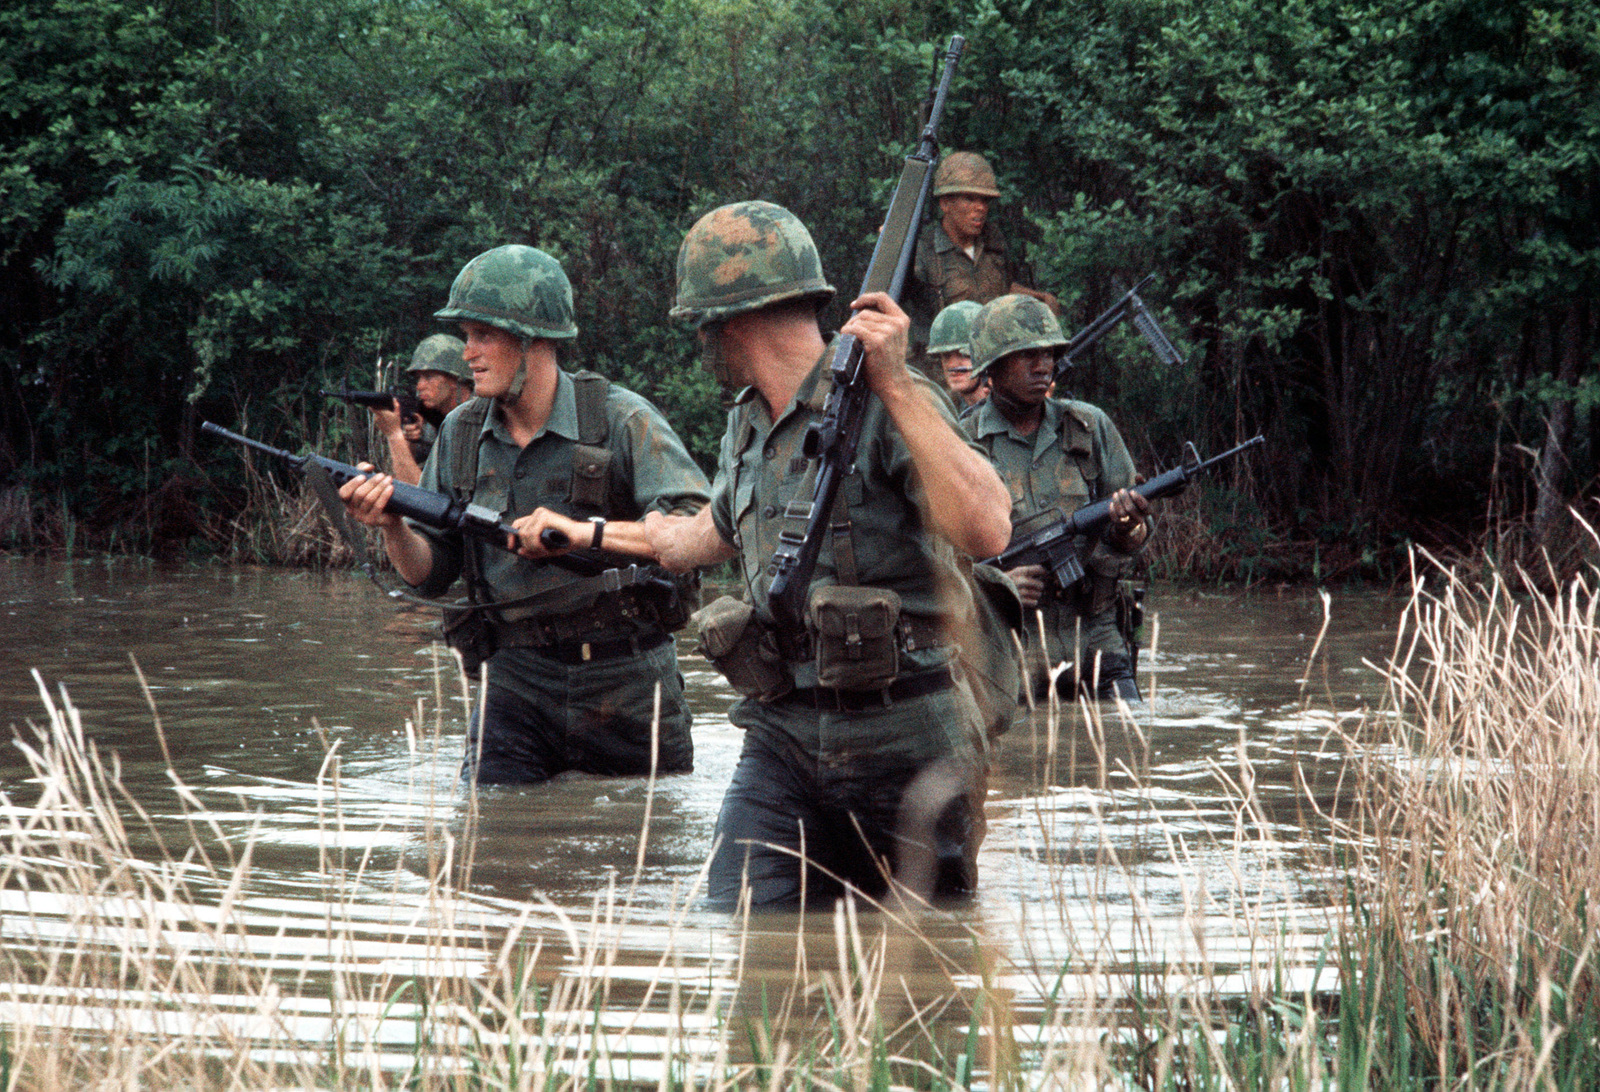 Army troops wade through a marshy area during a training exercise